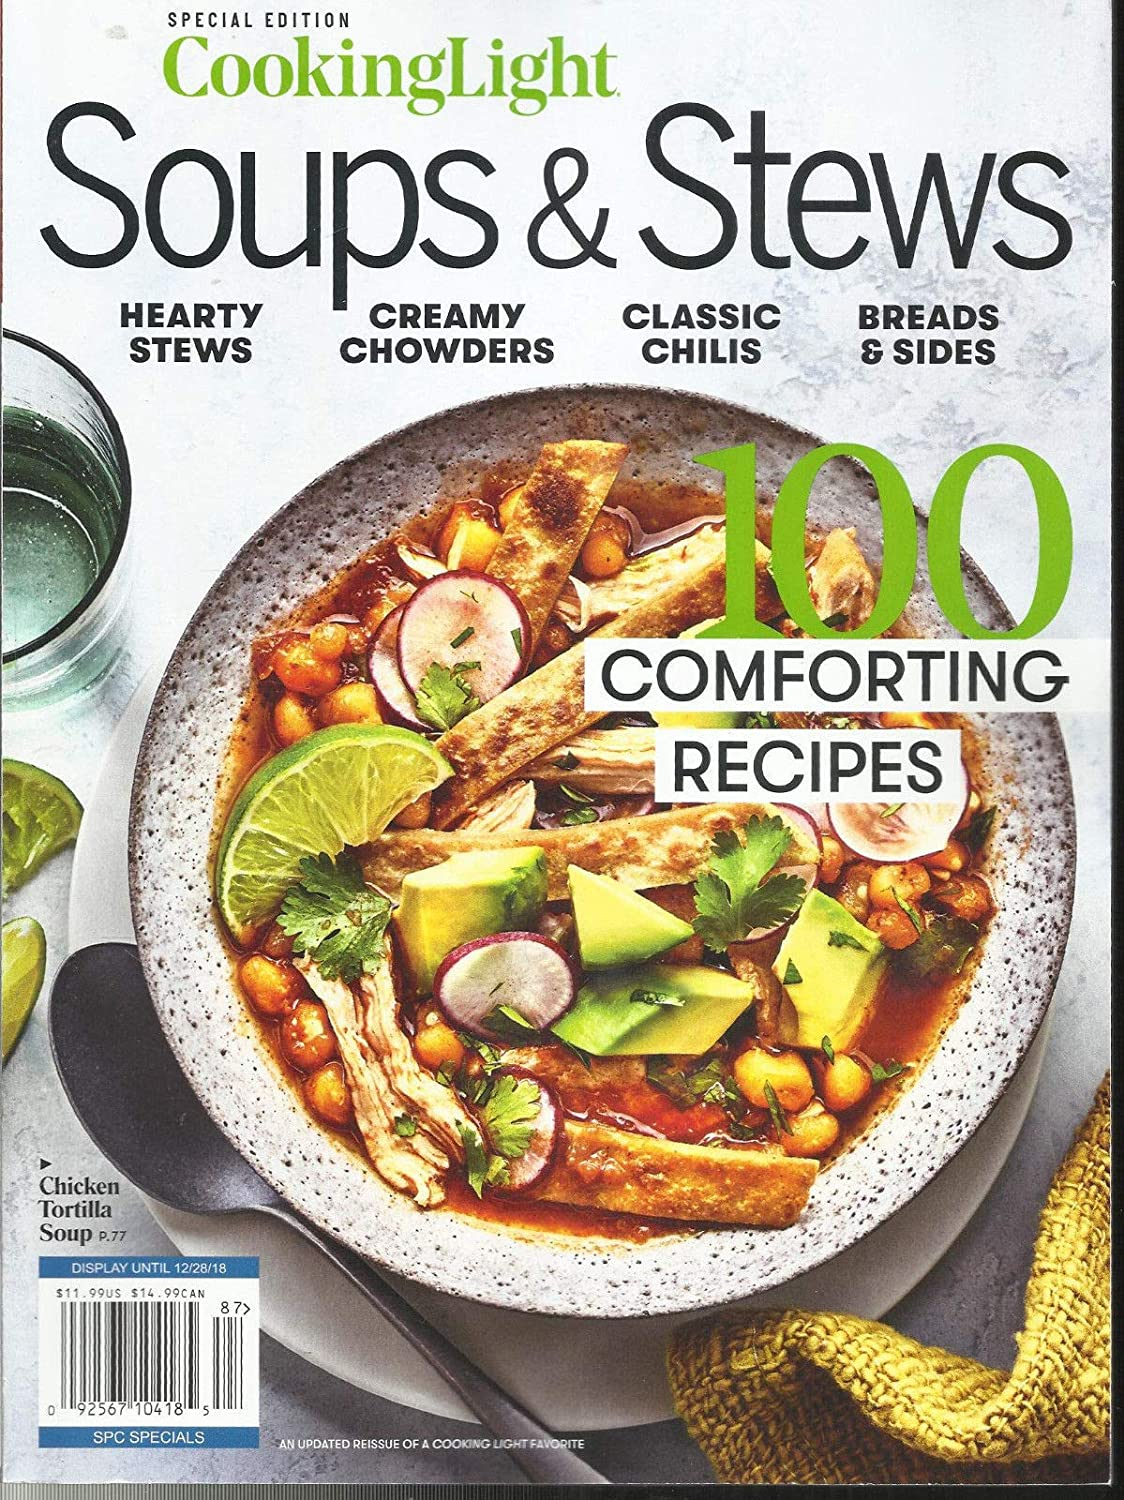 COOKING LIGHT MAGAZINE, SPECIALS EDITION, 2018 SOUPS & STEWS * COMFORTING RE s3457